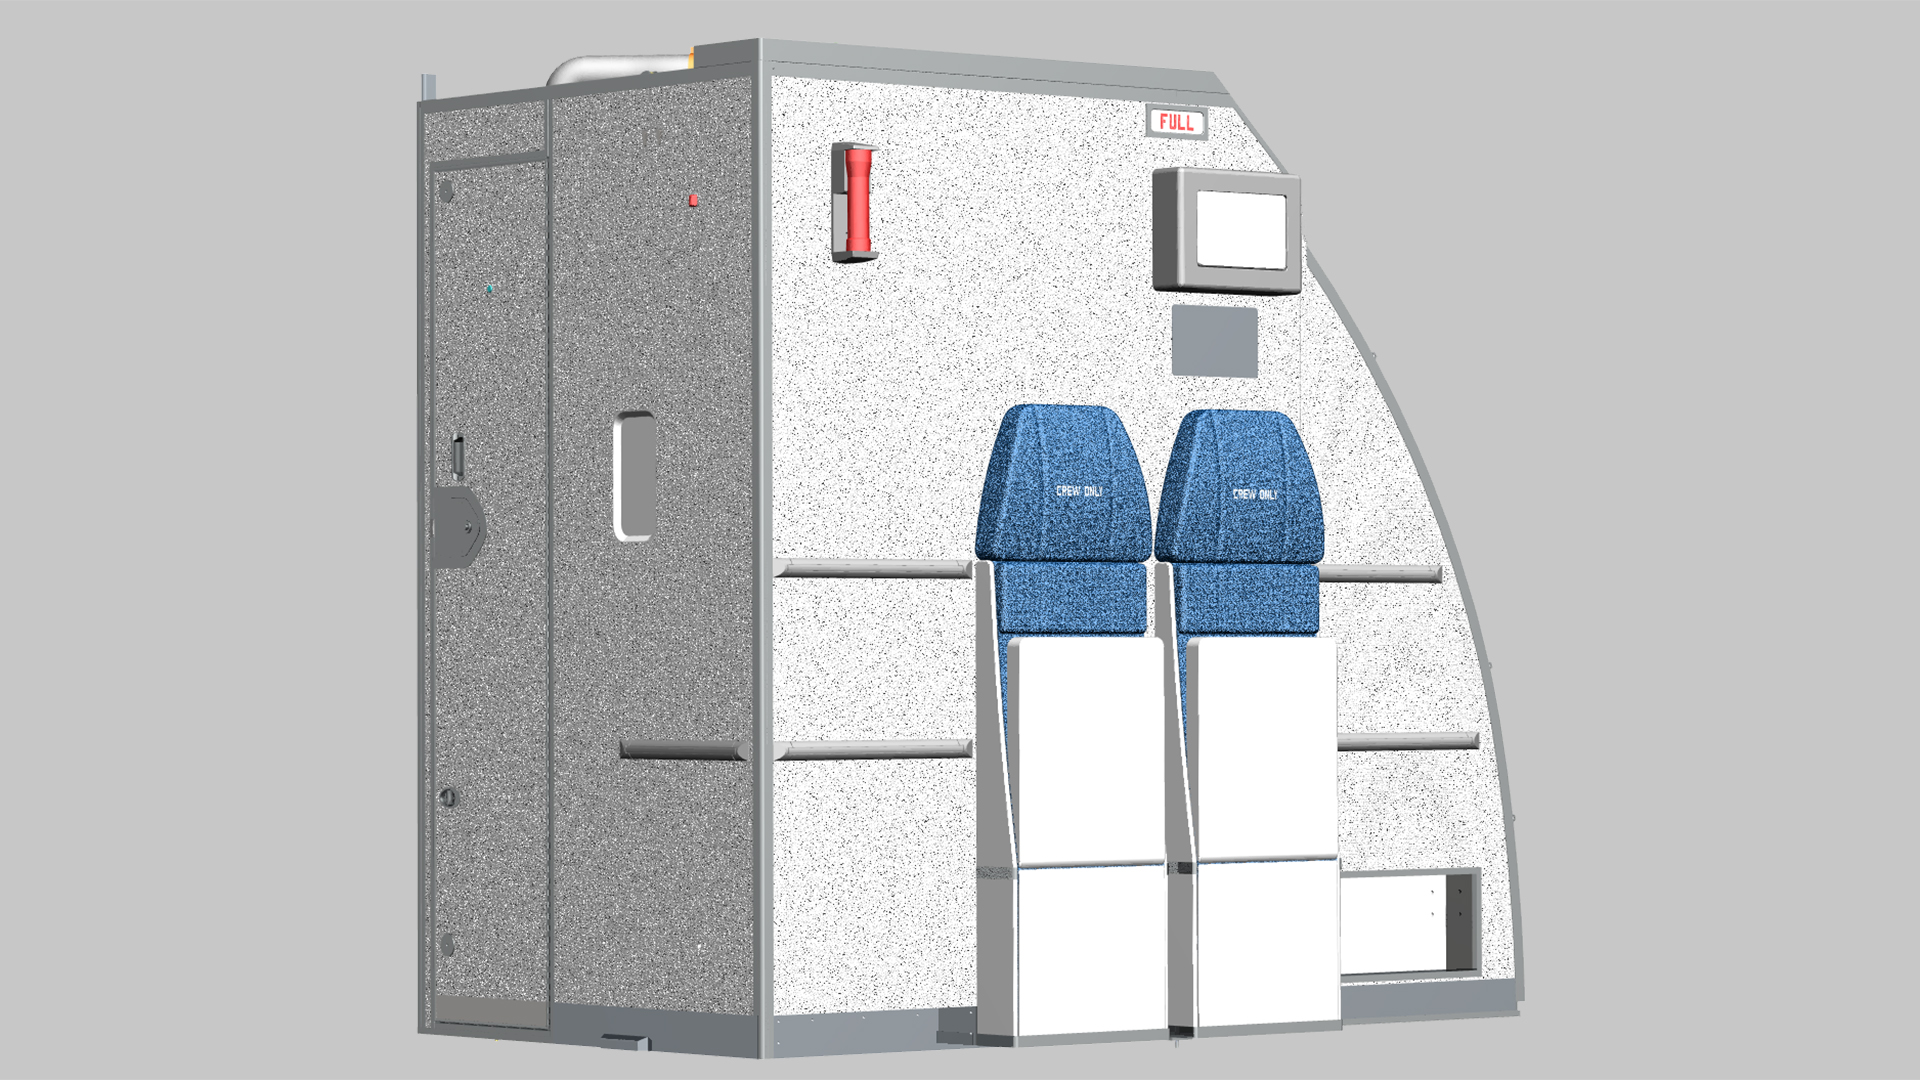 Crew rest with two external seats